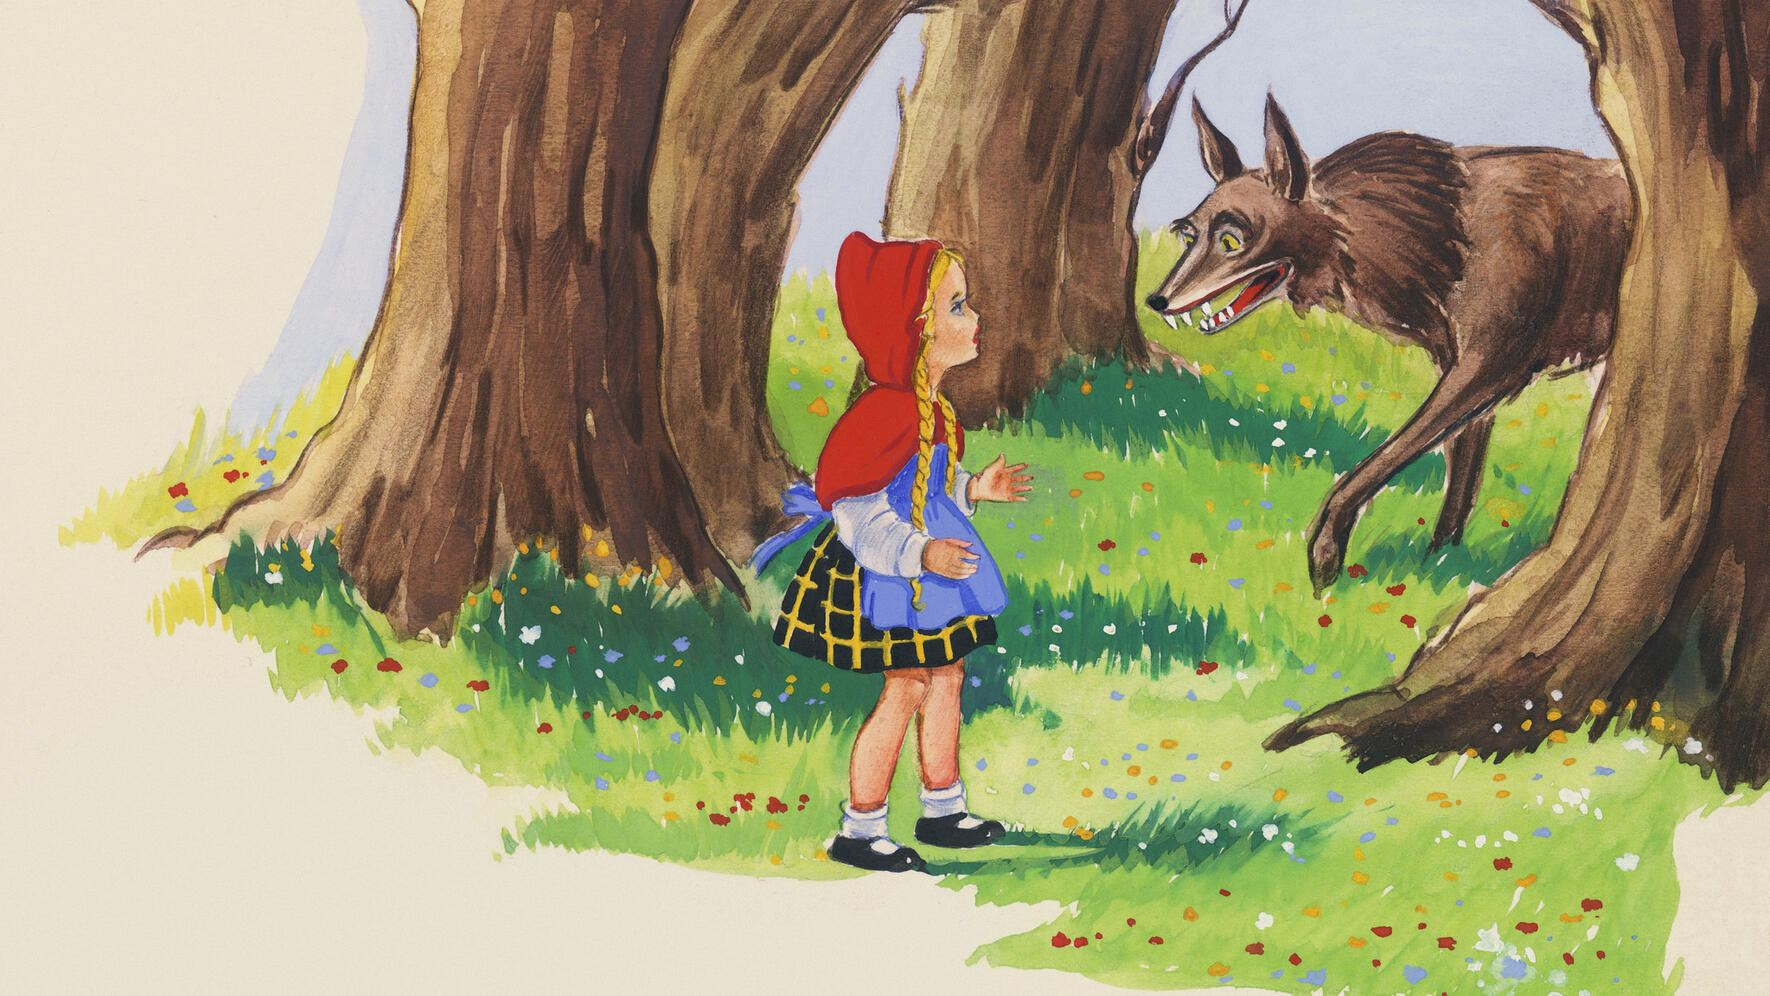 Little Red Riding Hood meeting with the wolf, illustration for the European fairy tale Little Red Riding Hood, drawing.